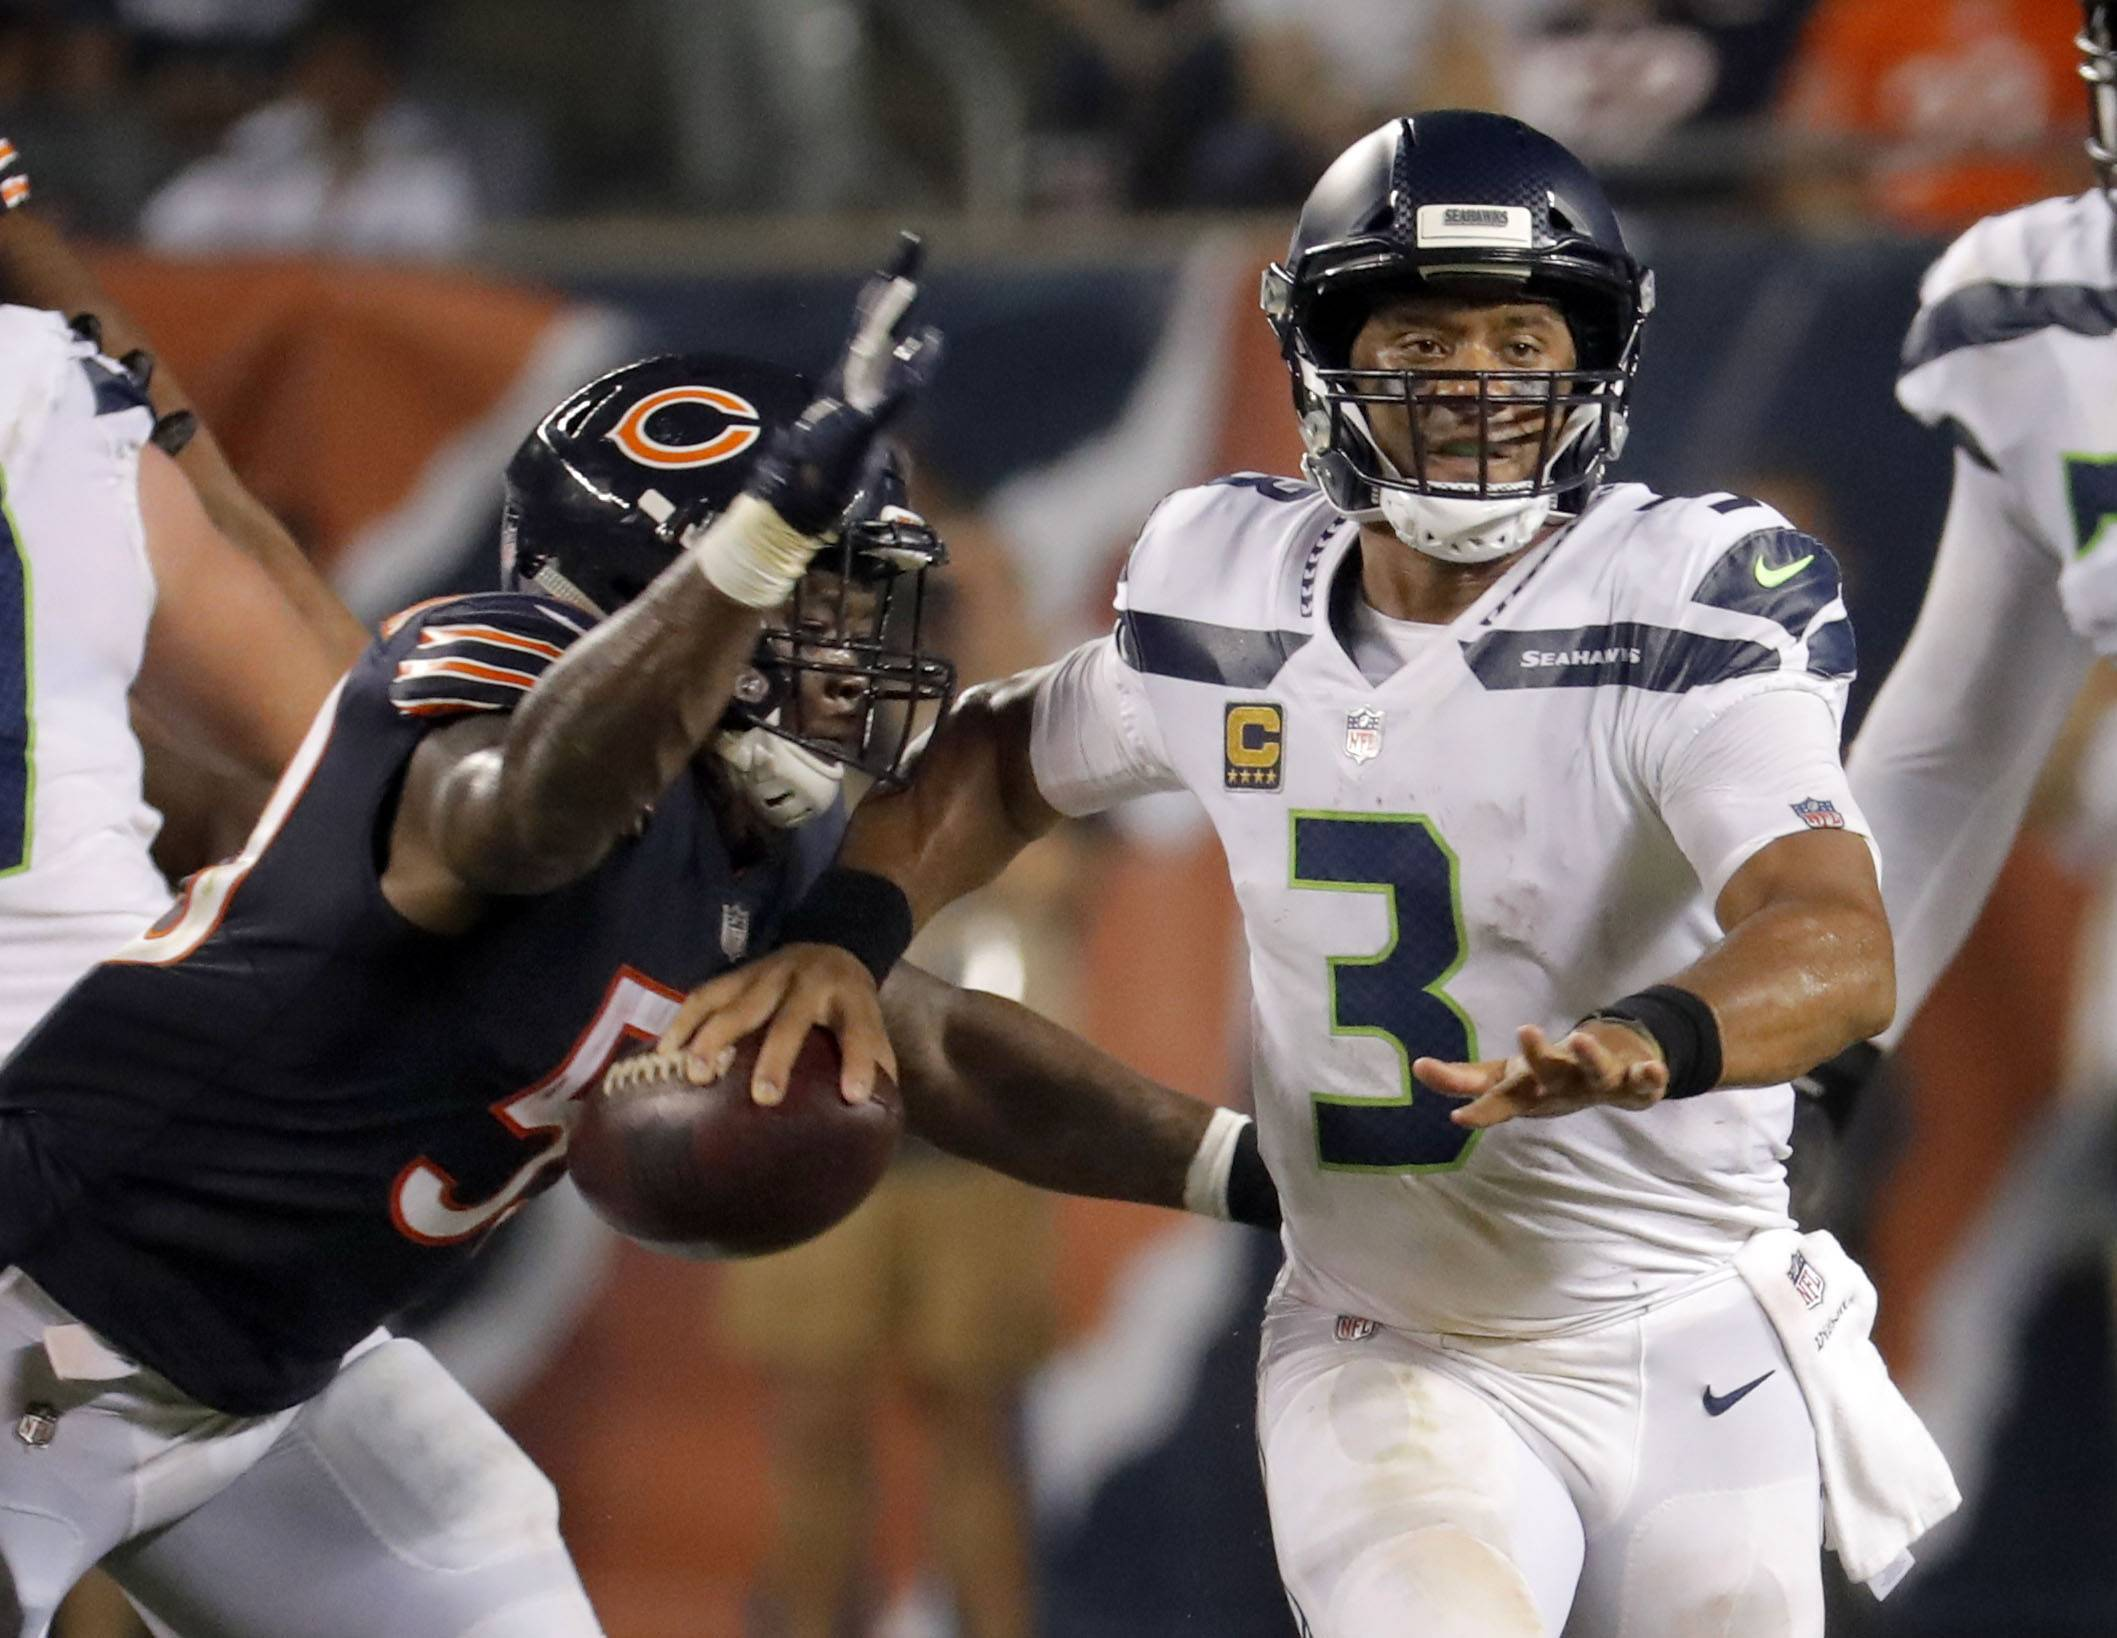 Bears linebacker Danny Trevathan strip sacks Seattle Seahawks quarterback Russell Wilson during the Chicago Bears vs the Seattle Seahawks game Monday September 17, 2018 at Soldier Field in Chicago. The seven-year veteran had the first multiple-sack game of his career vs. the Seahawks, forced a fumble on one of them, which outside linebacker Leonard Floyd recovered, and had 8 tackles. Trevathan leads the Bears this season with 15 total tackles and 11 solos.